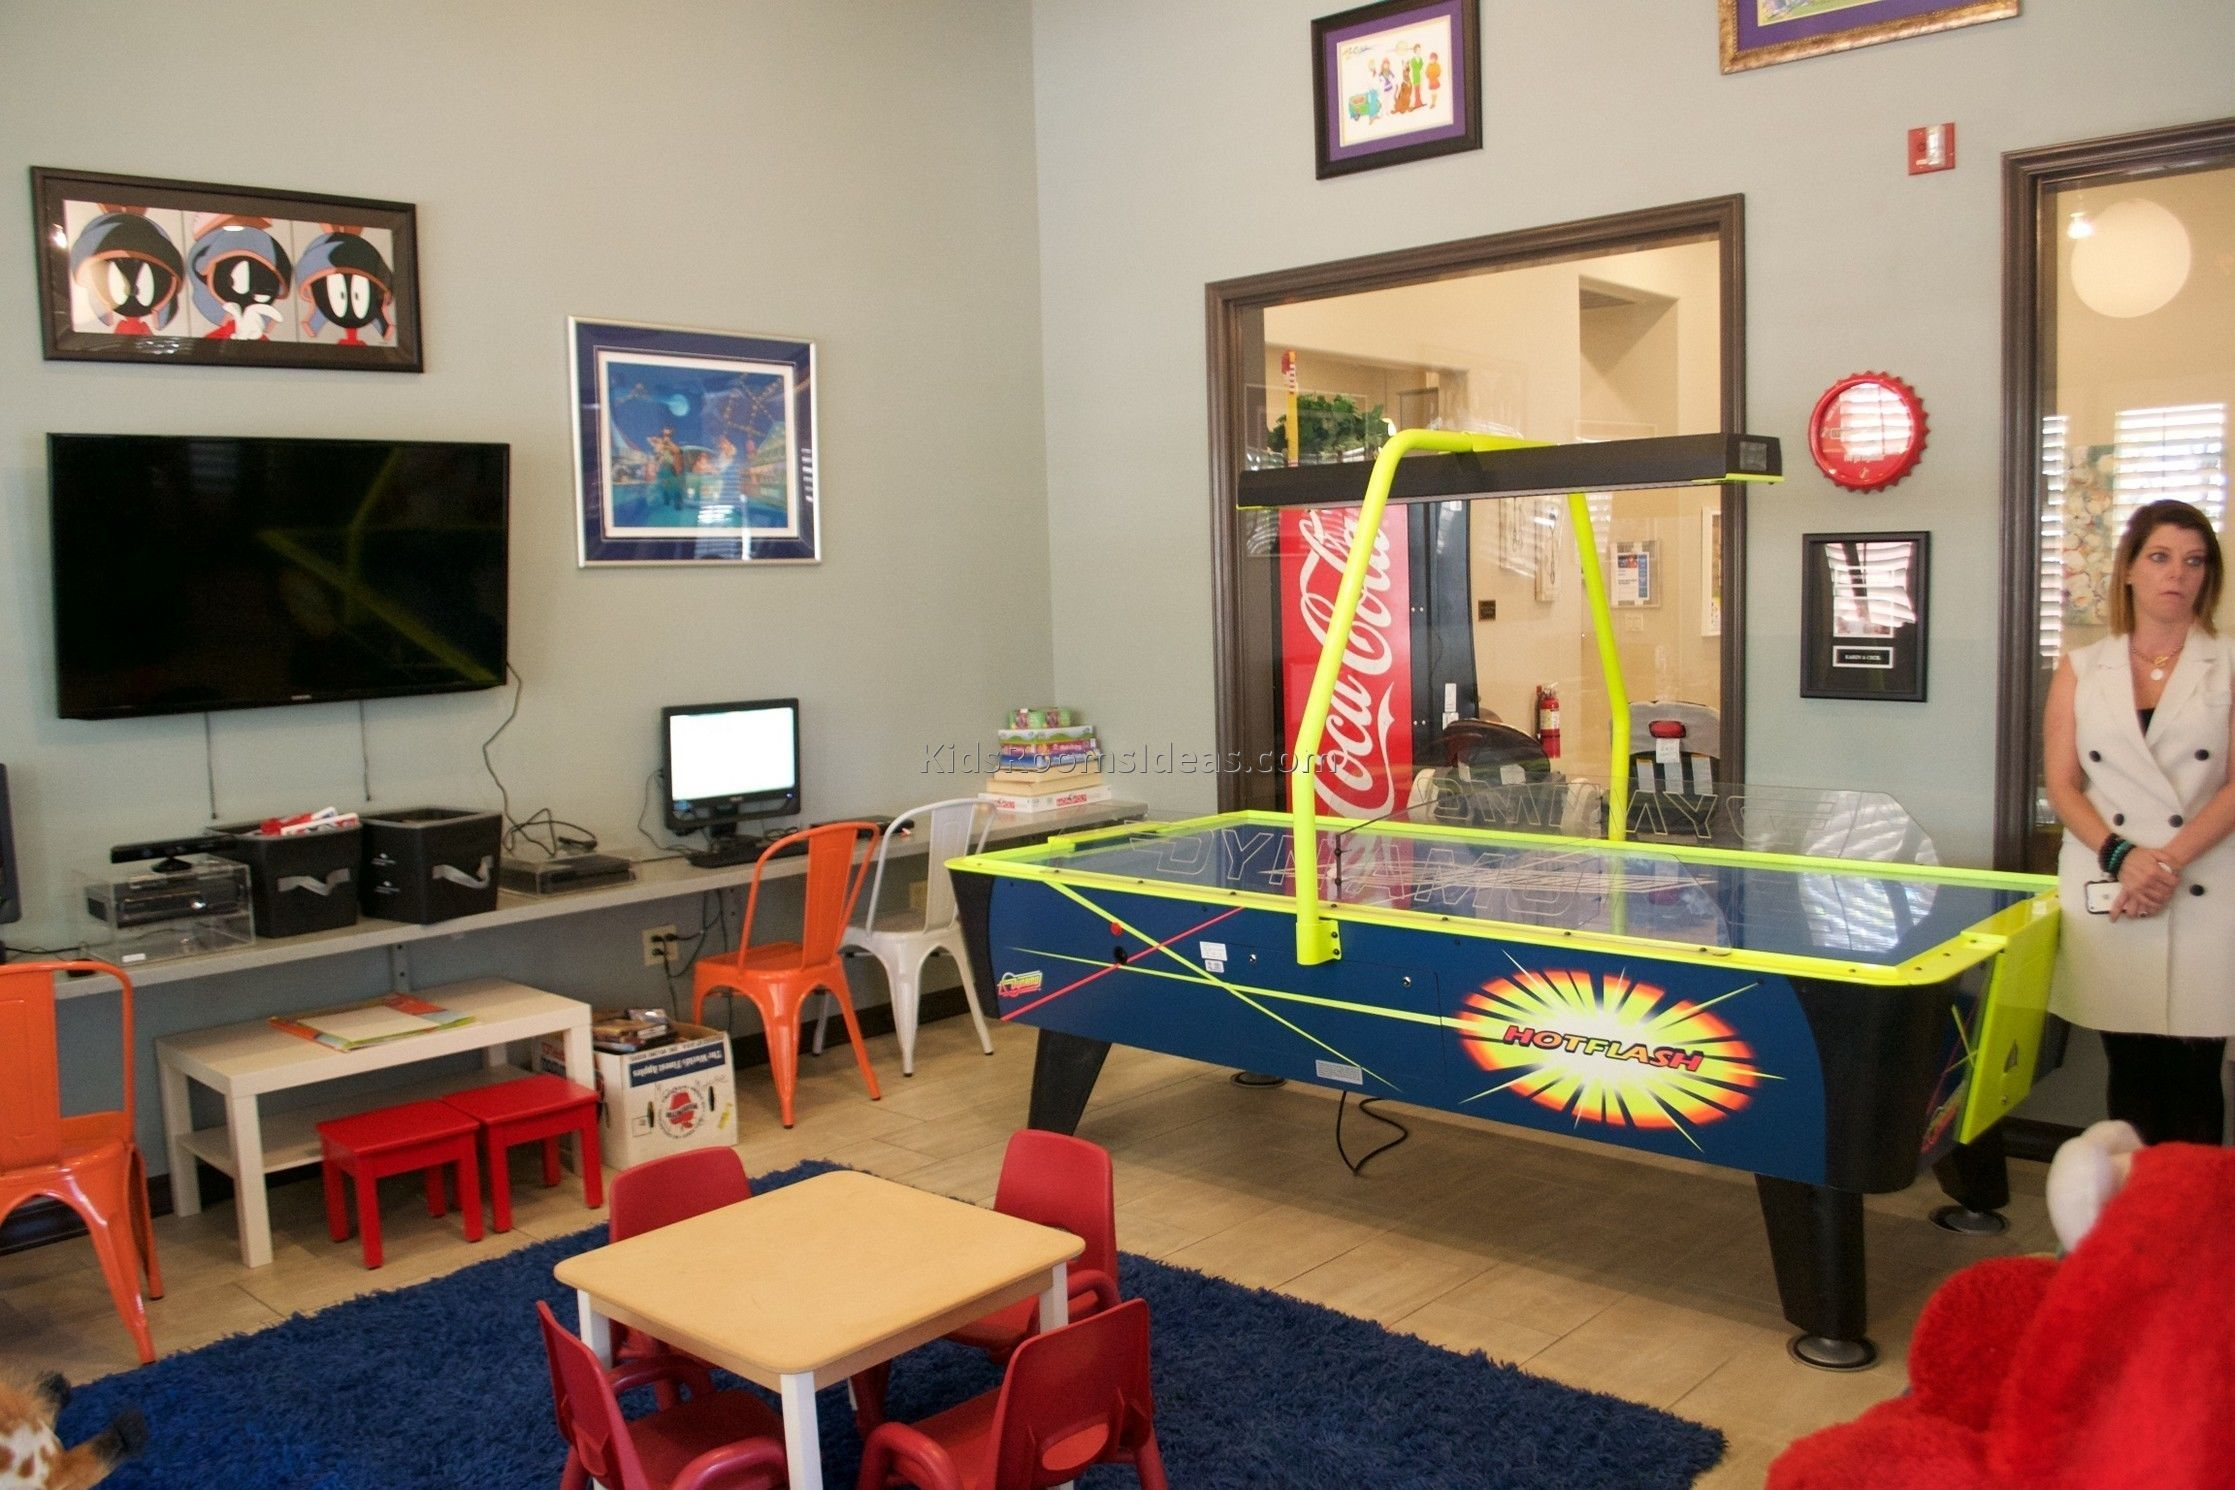 Marvellous Boys Video Game Room Ideas Small Game Rooms Game Room Decor Game Room Design